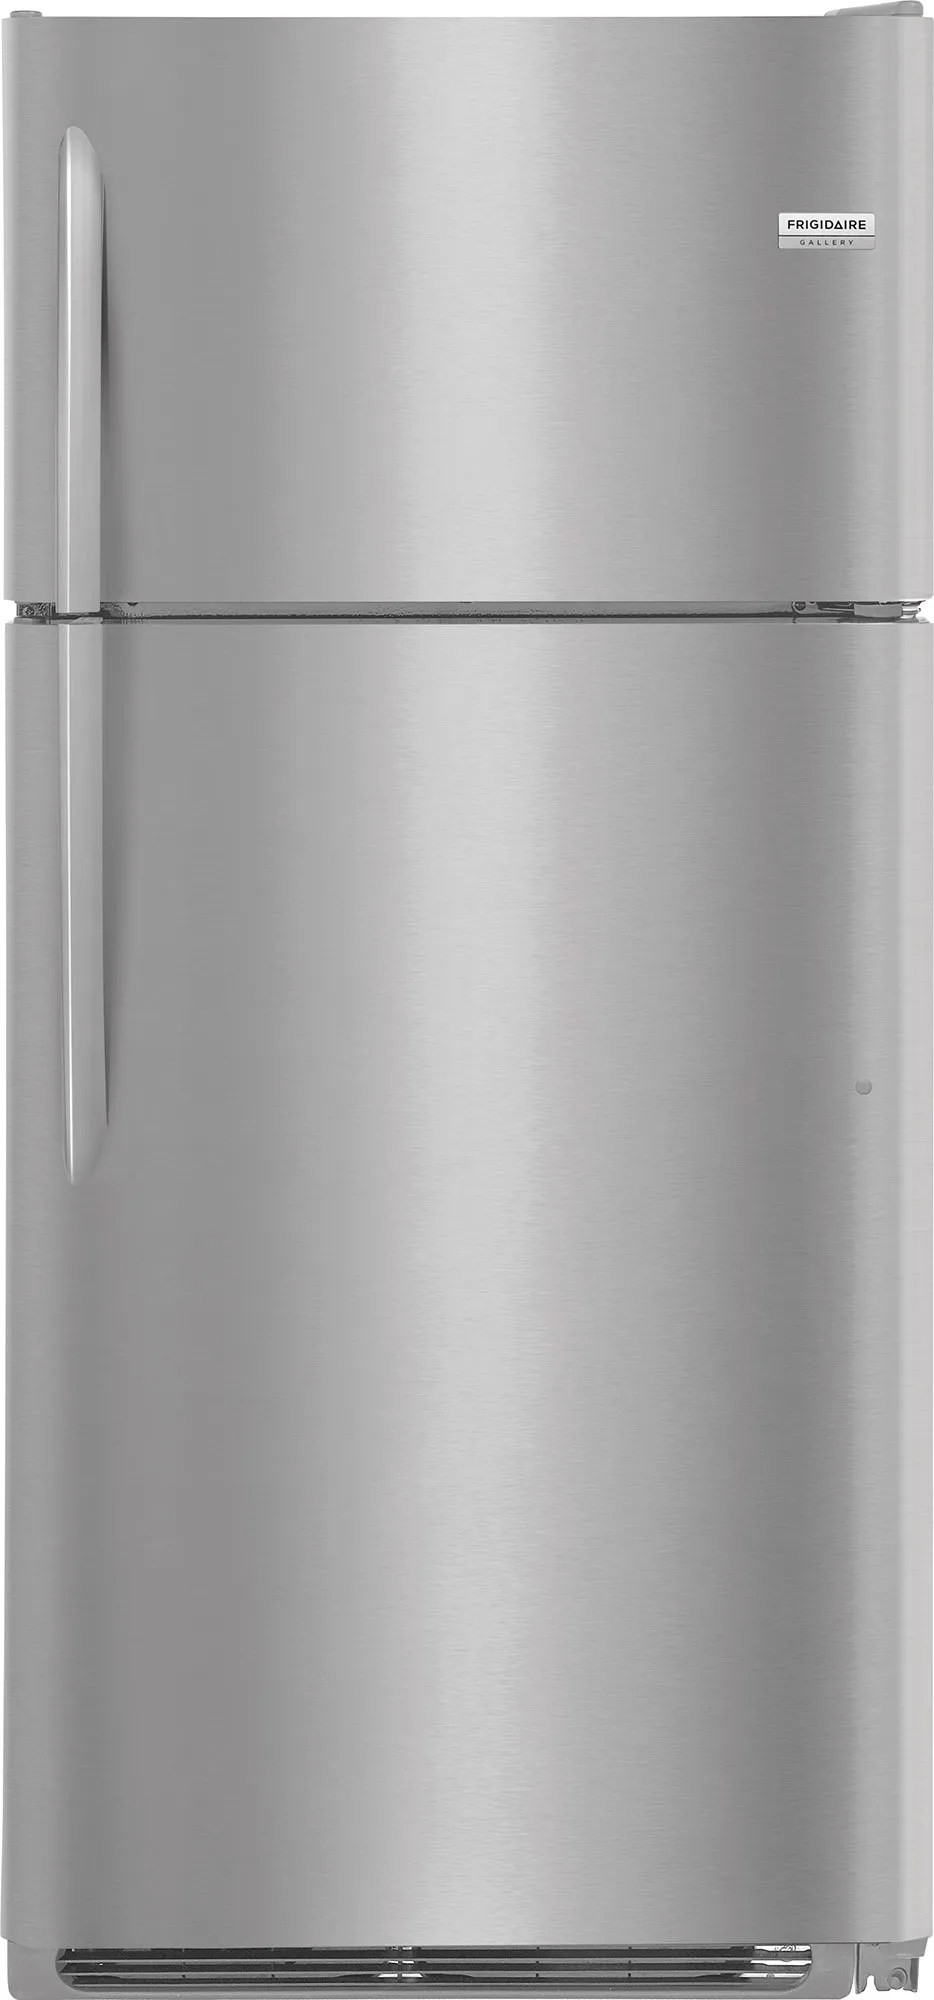 hight resolution of frigidaire gallery 18 cu ft top freezer refrigerator stainless steel fgtr1837tf